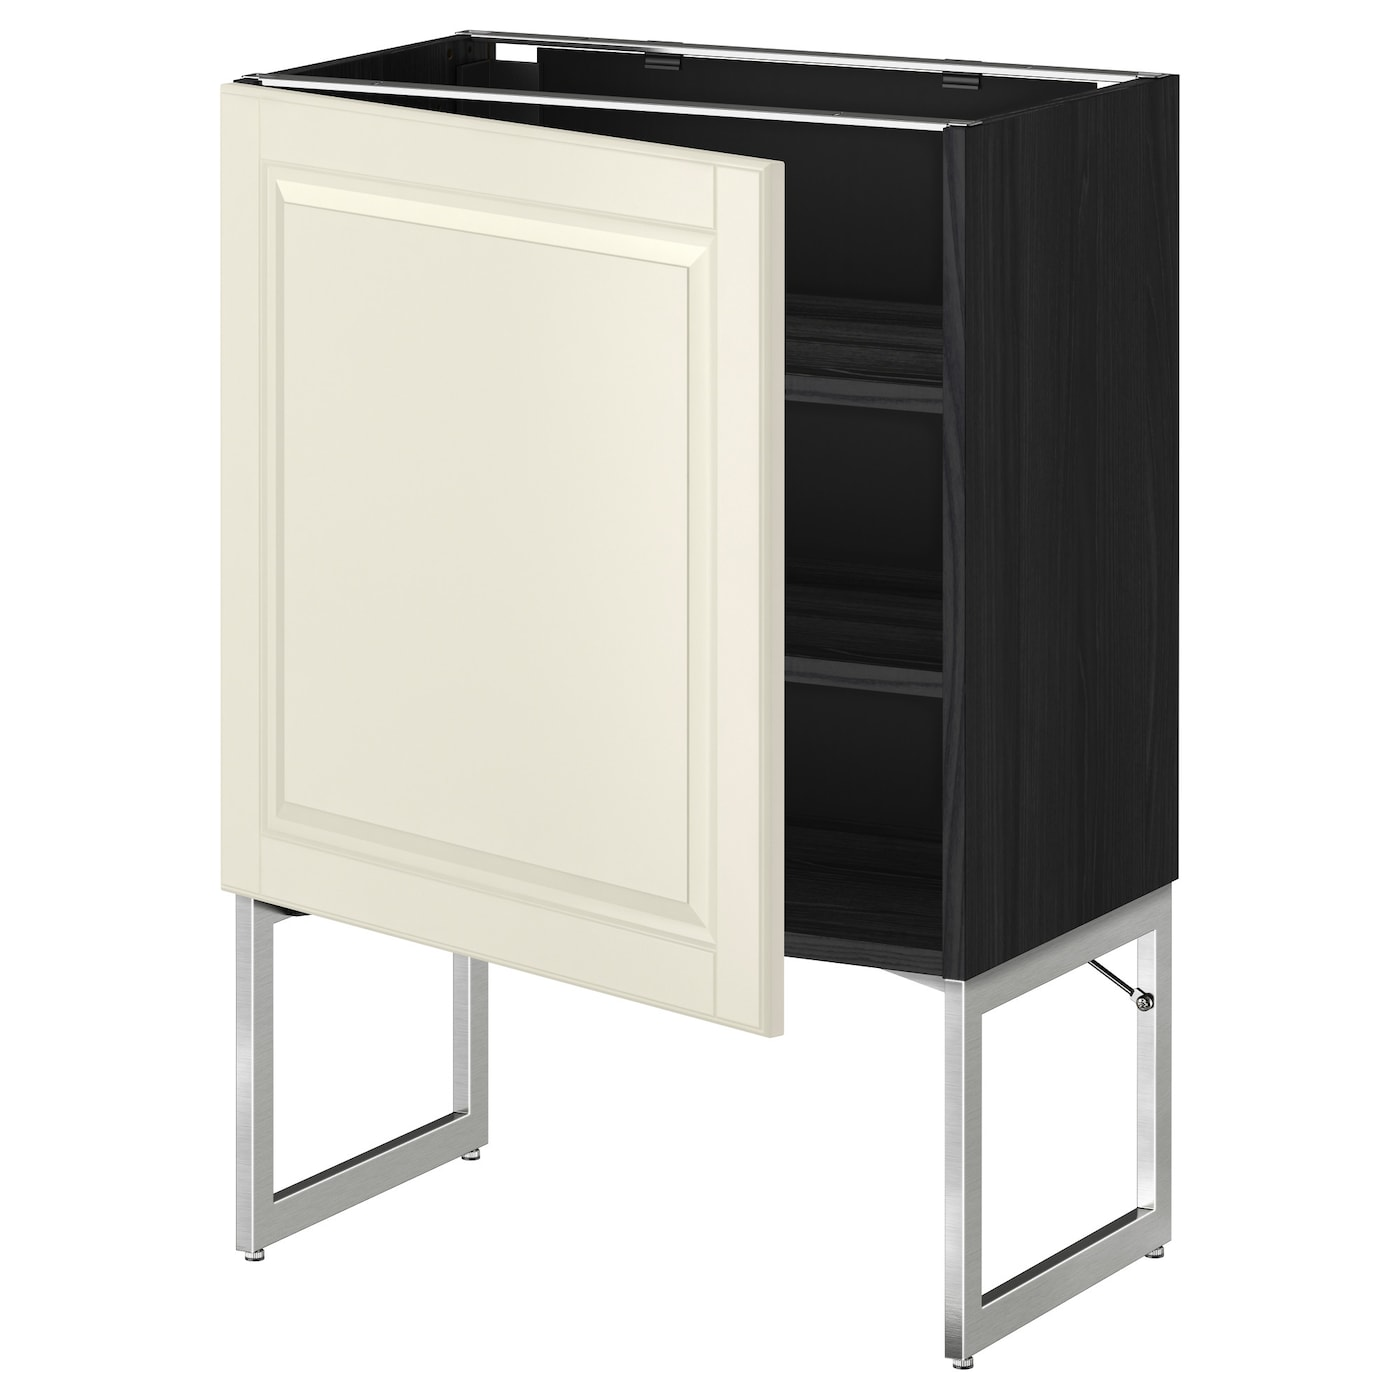 Ikea Kitchen Black Cabinets: METOD Base Cabinet With Shelves Black/bodbyn Off-white